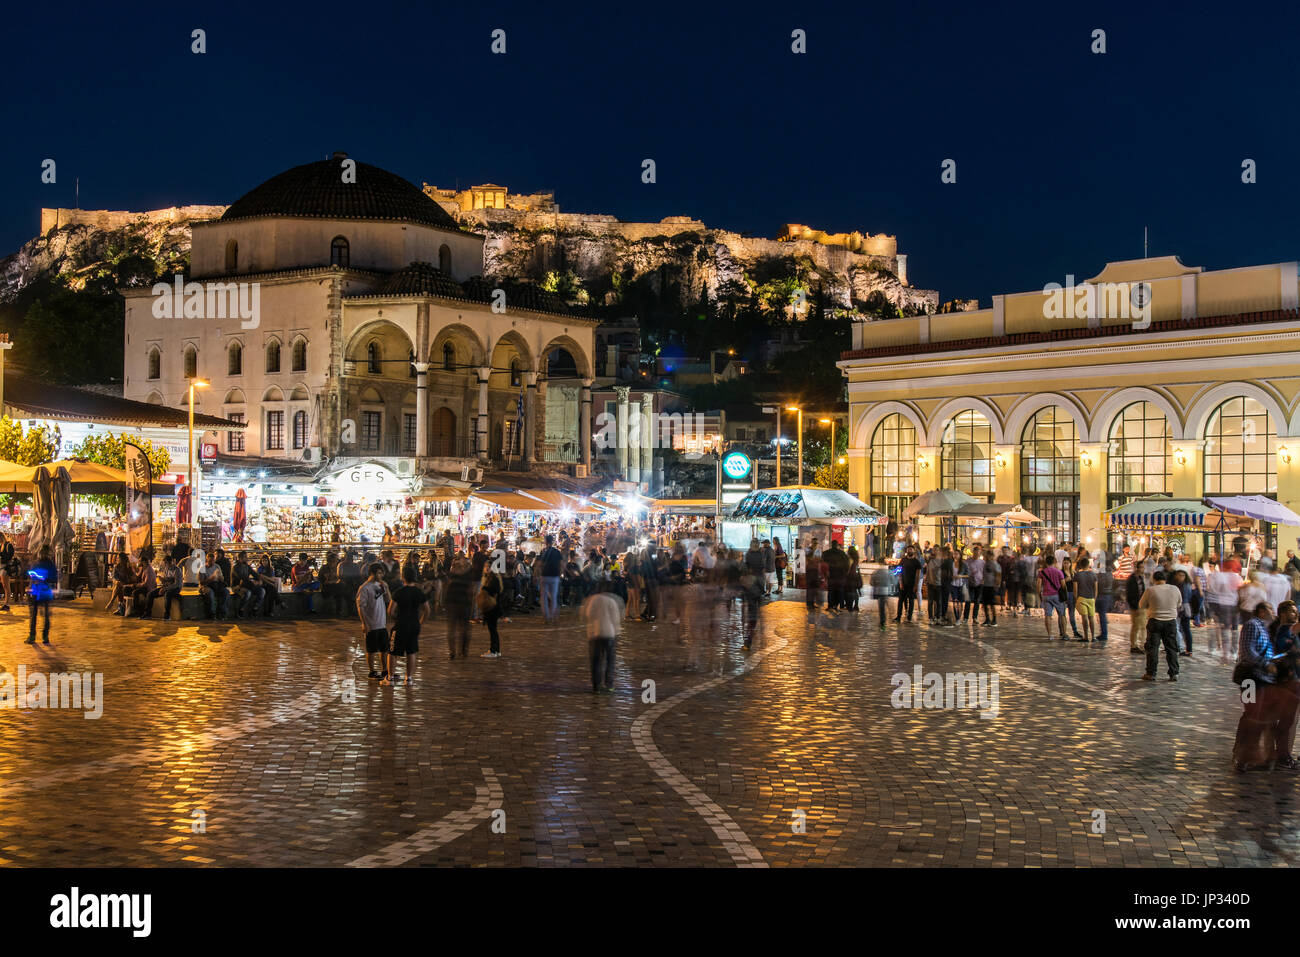 Night view of Monastiraki square with Acropolis in the background, Athens, Attica, Greece - Stock Image